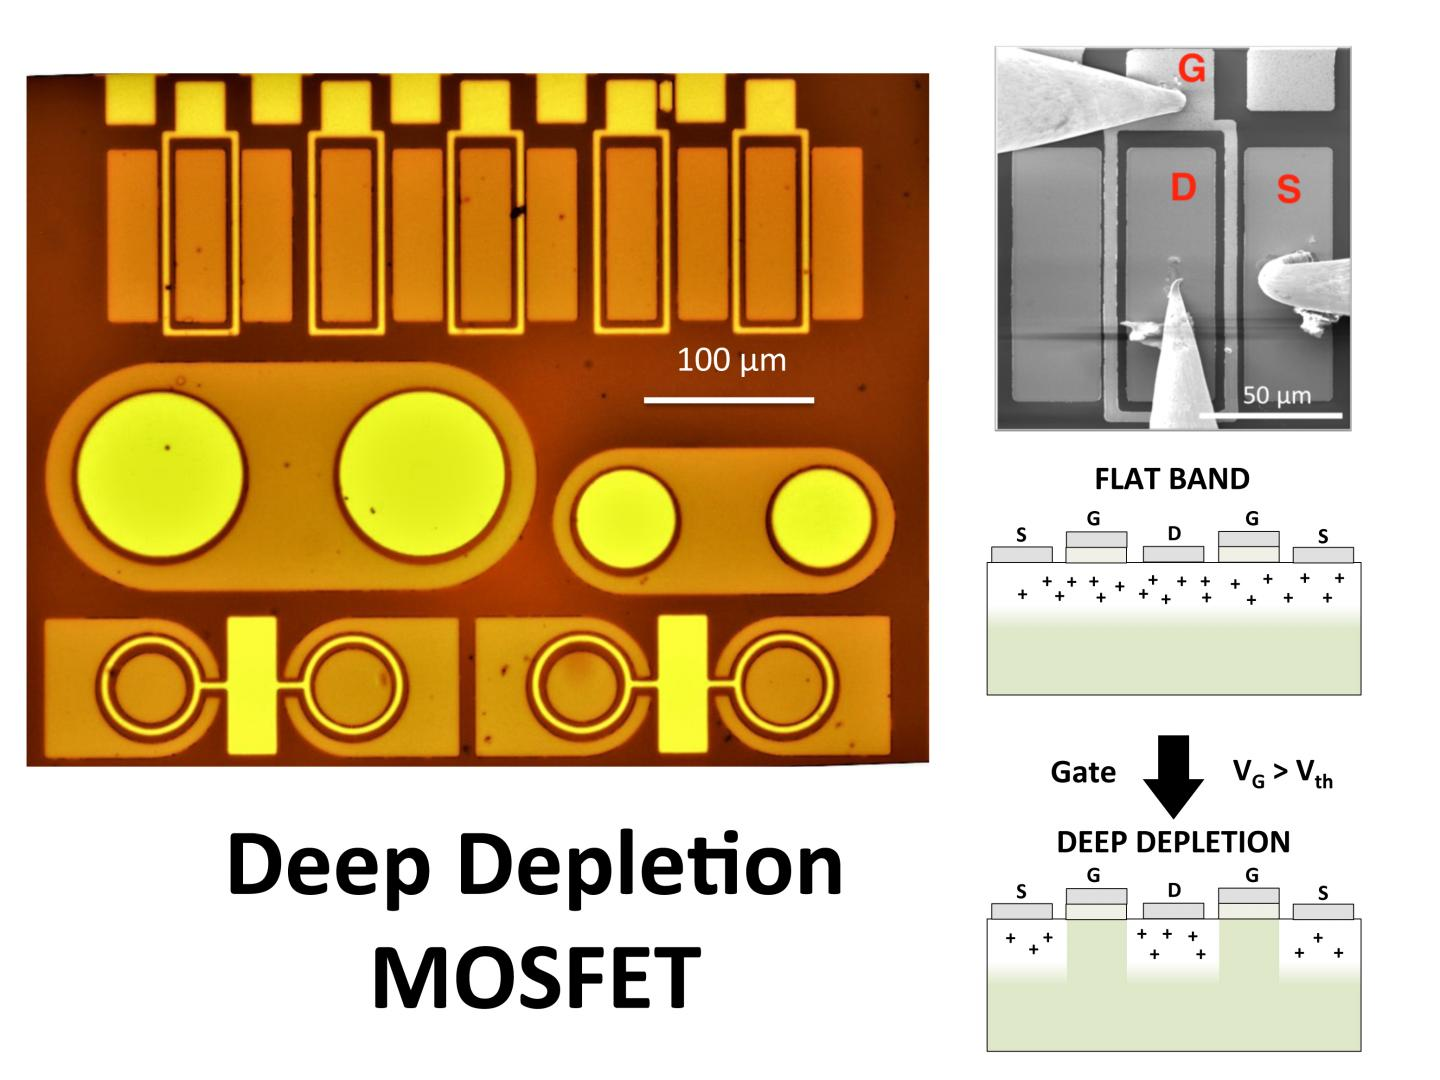 Optical Microscope Image of the MOSCAPs and Diamond Deep Depletion MOSFETs